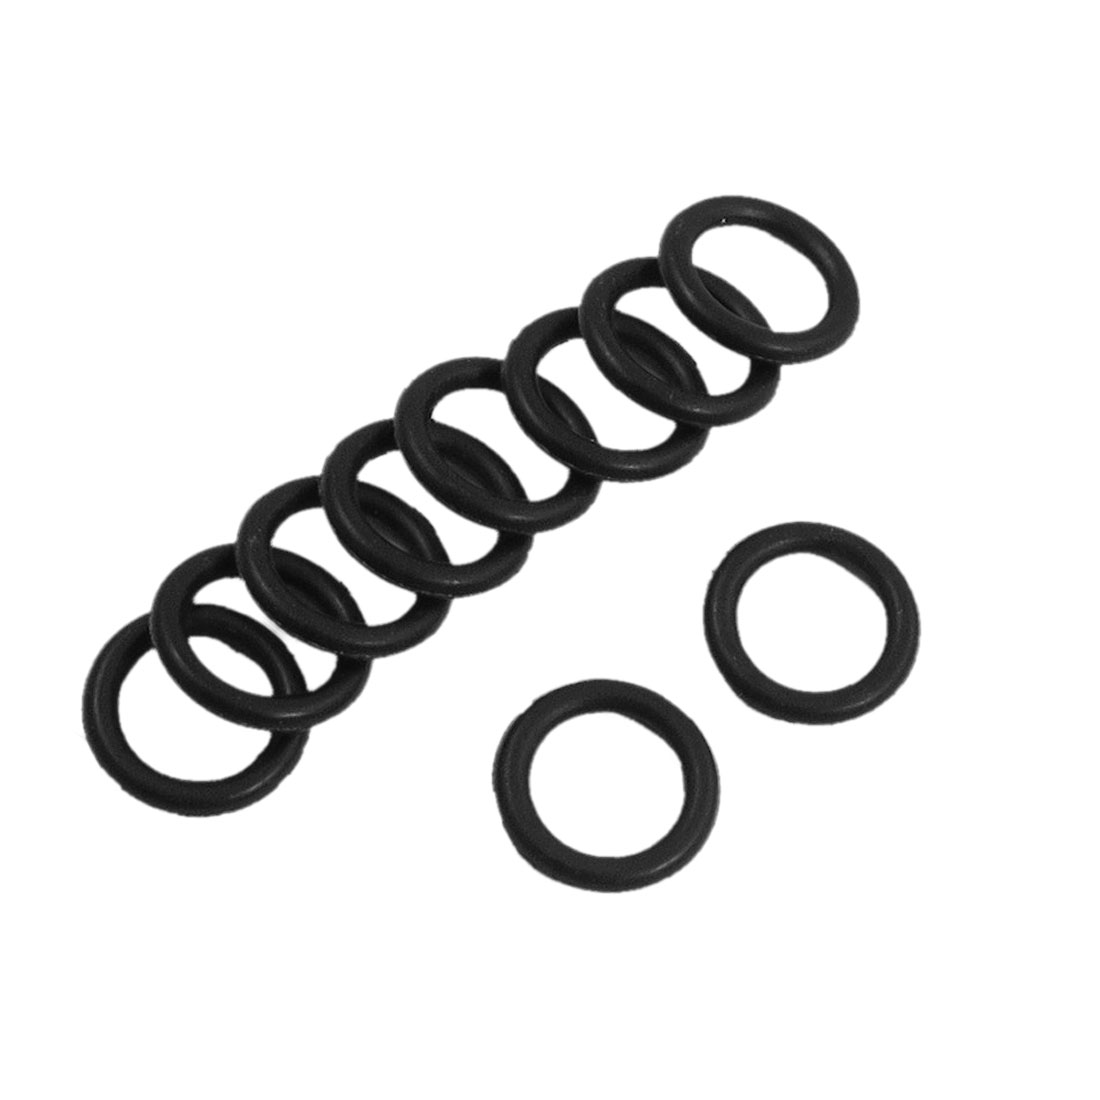 10 Pcs 15mm x 2.4mm Rubber Sealing Oil Filter O Rings Gaskets